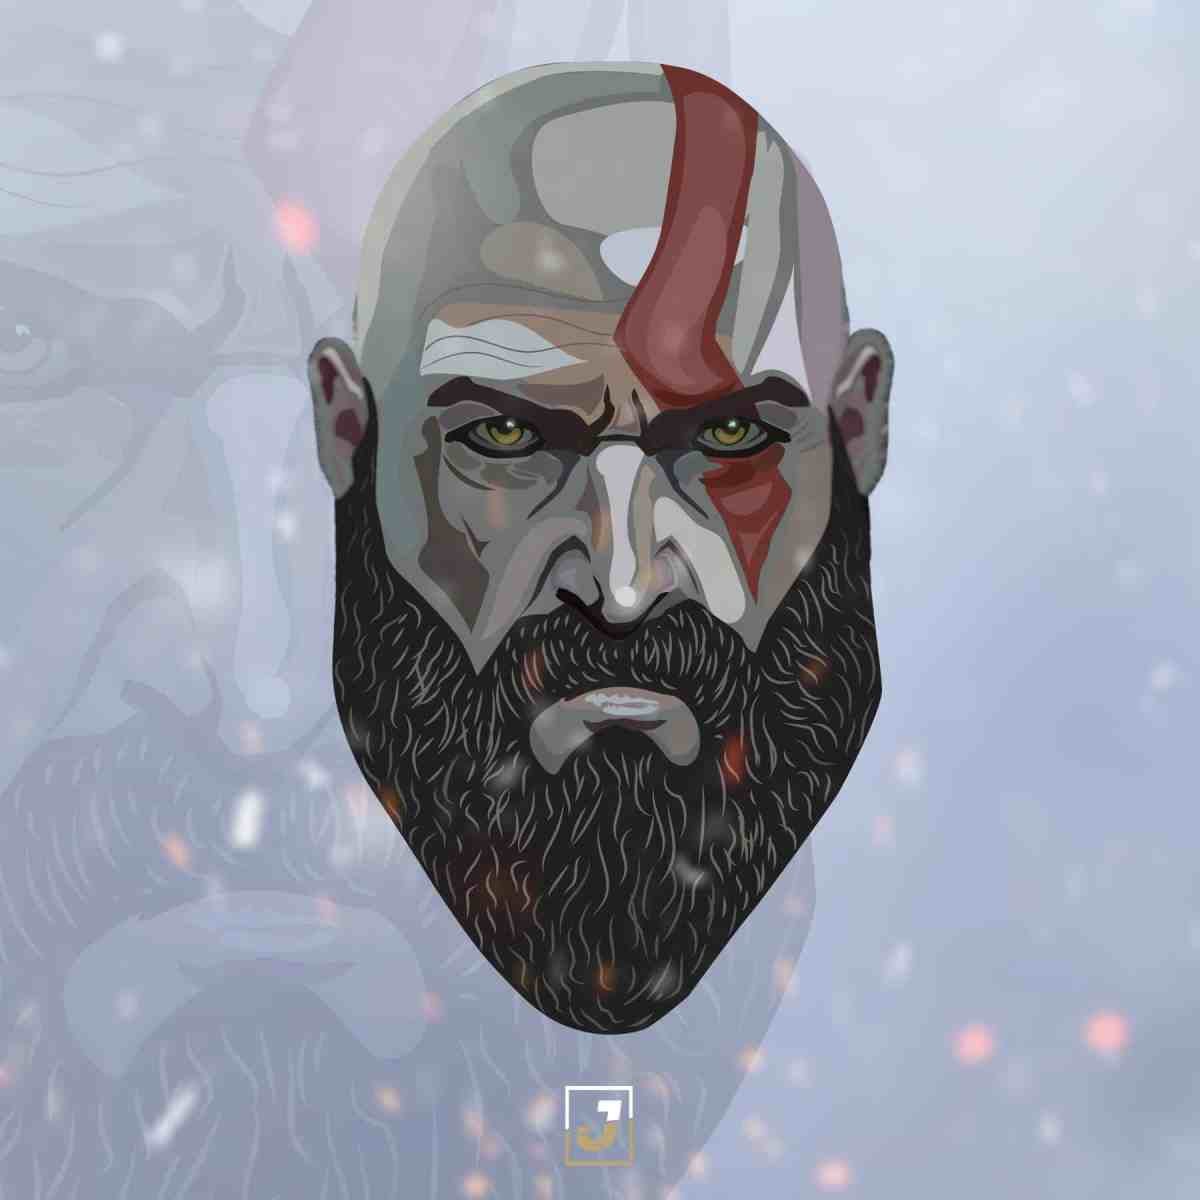 God of War (Kratos)